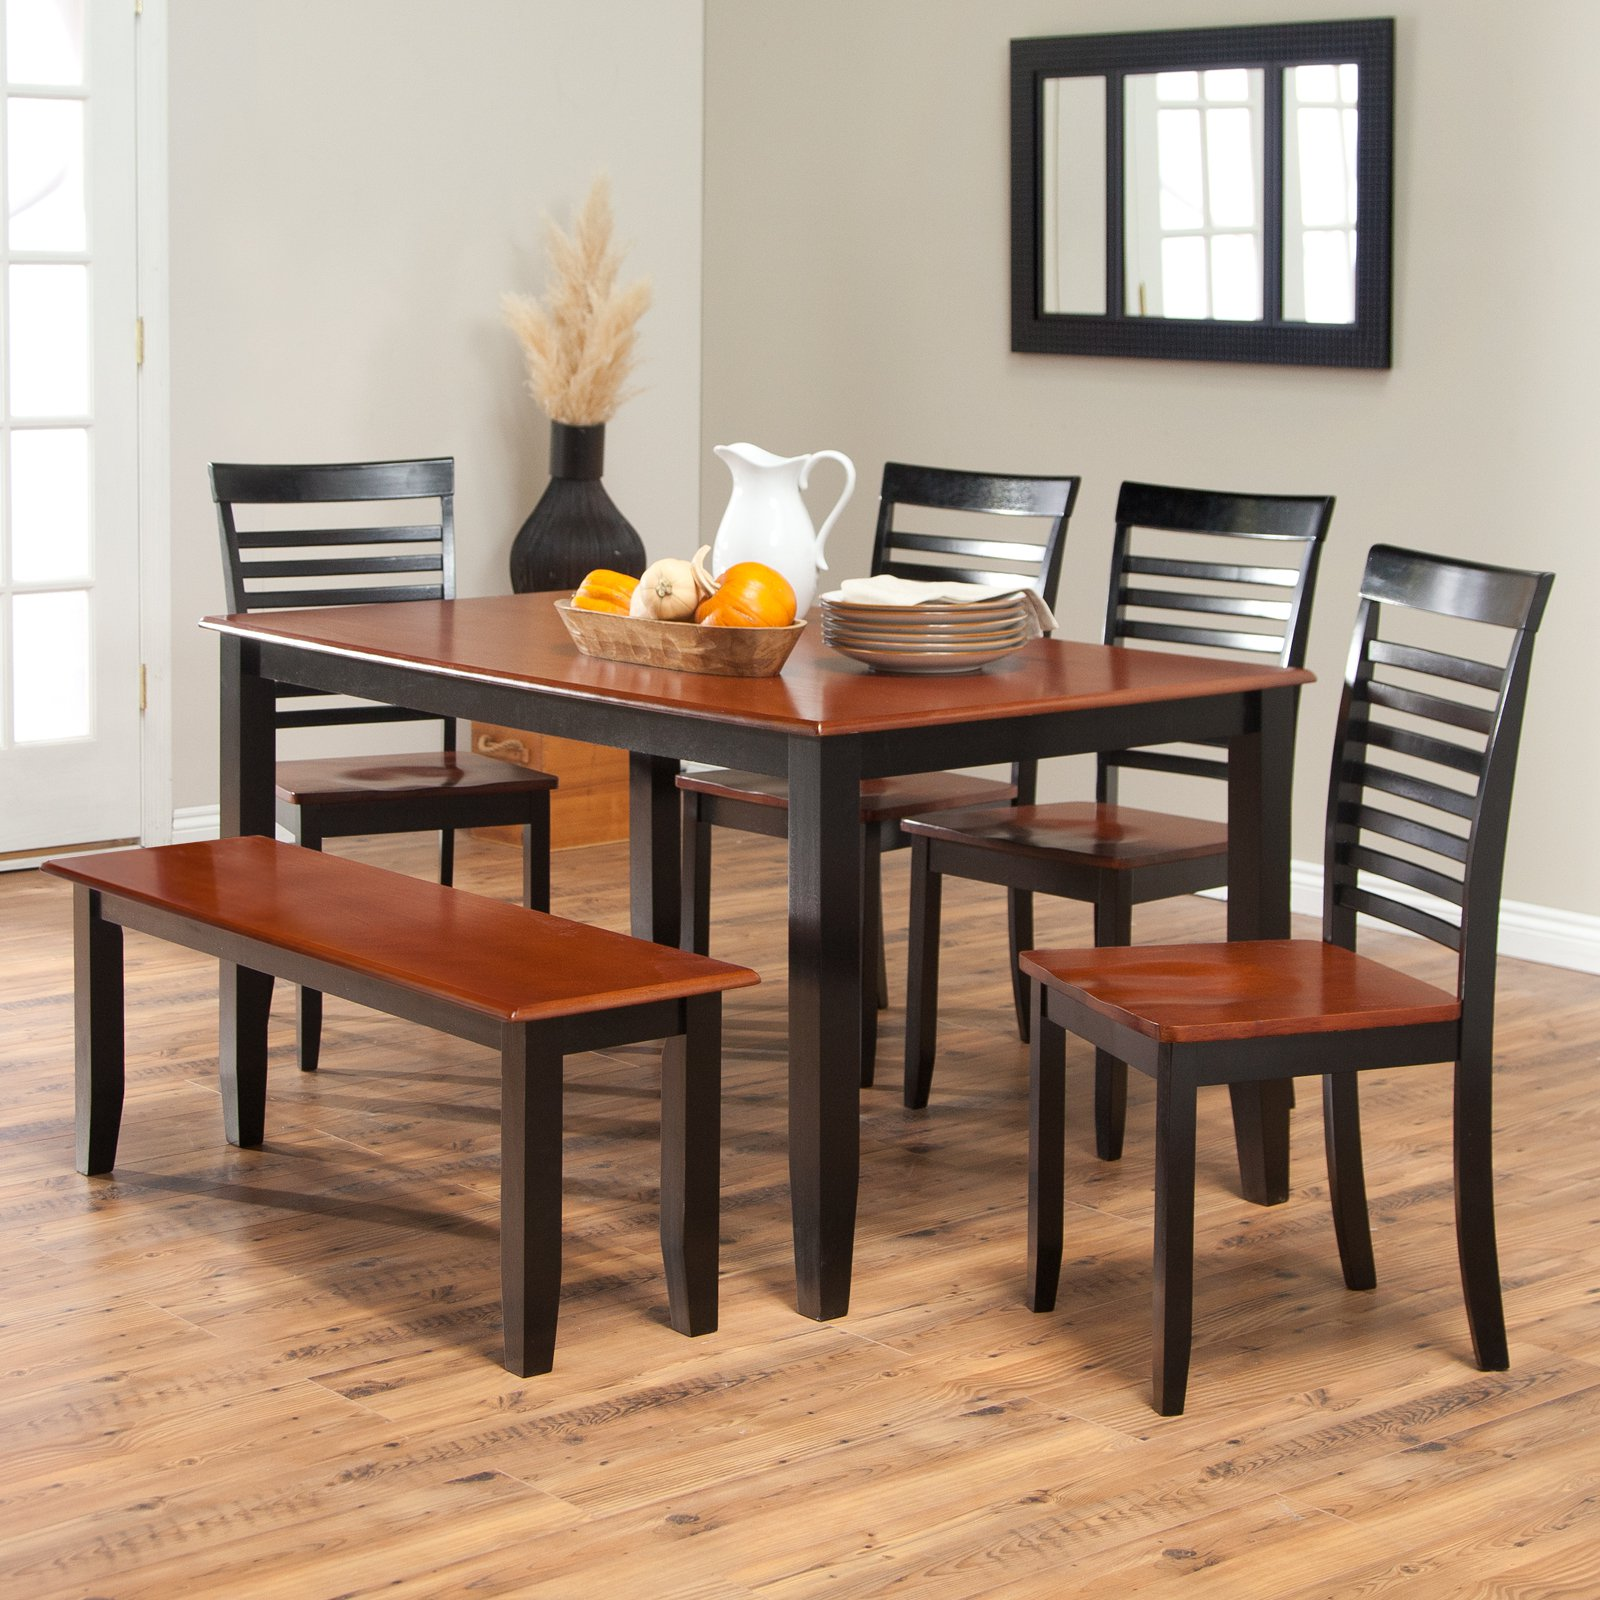 Cherry Kitchen Table Sets New in raleigh kitchen cabinets Home Decorating